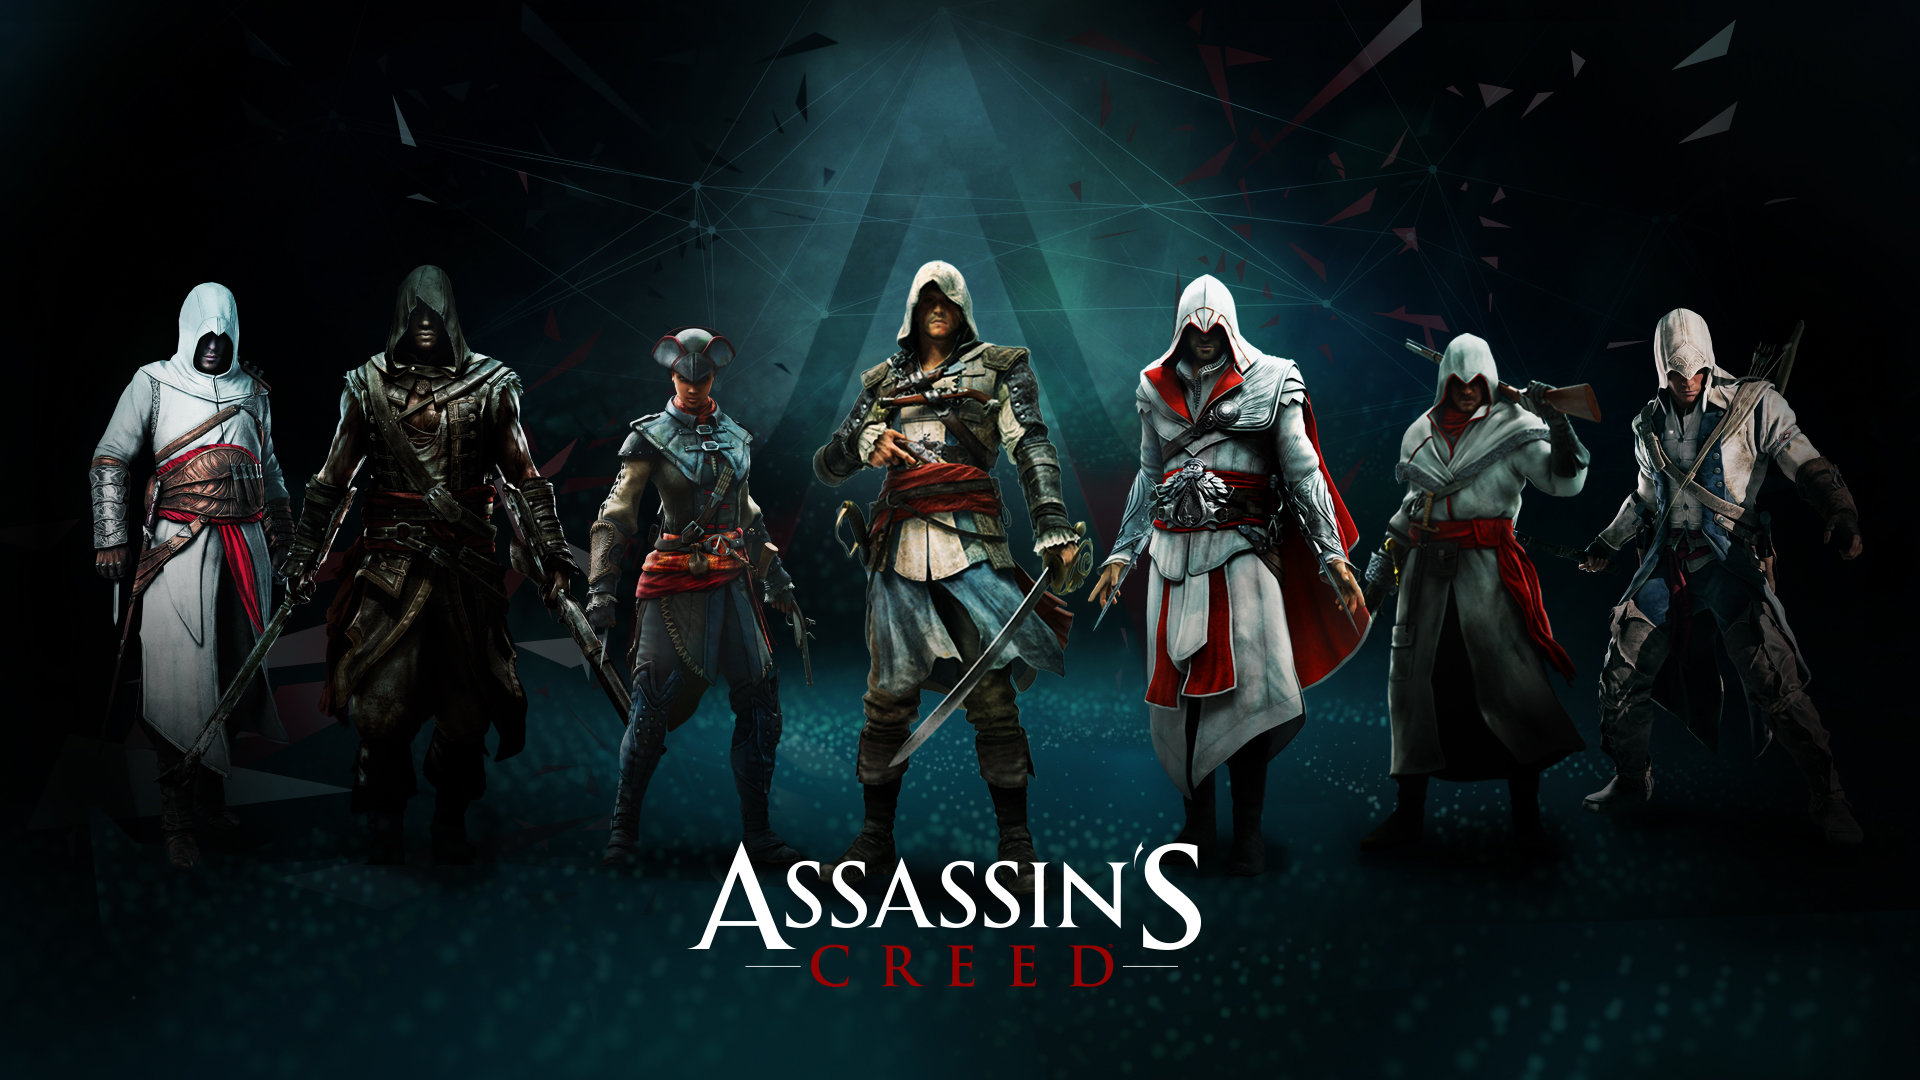 Connor Assassin S Creed Wallpapers 1920x1080 Full Hd 1080p Desktop Backgrounds